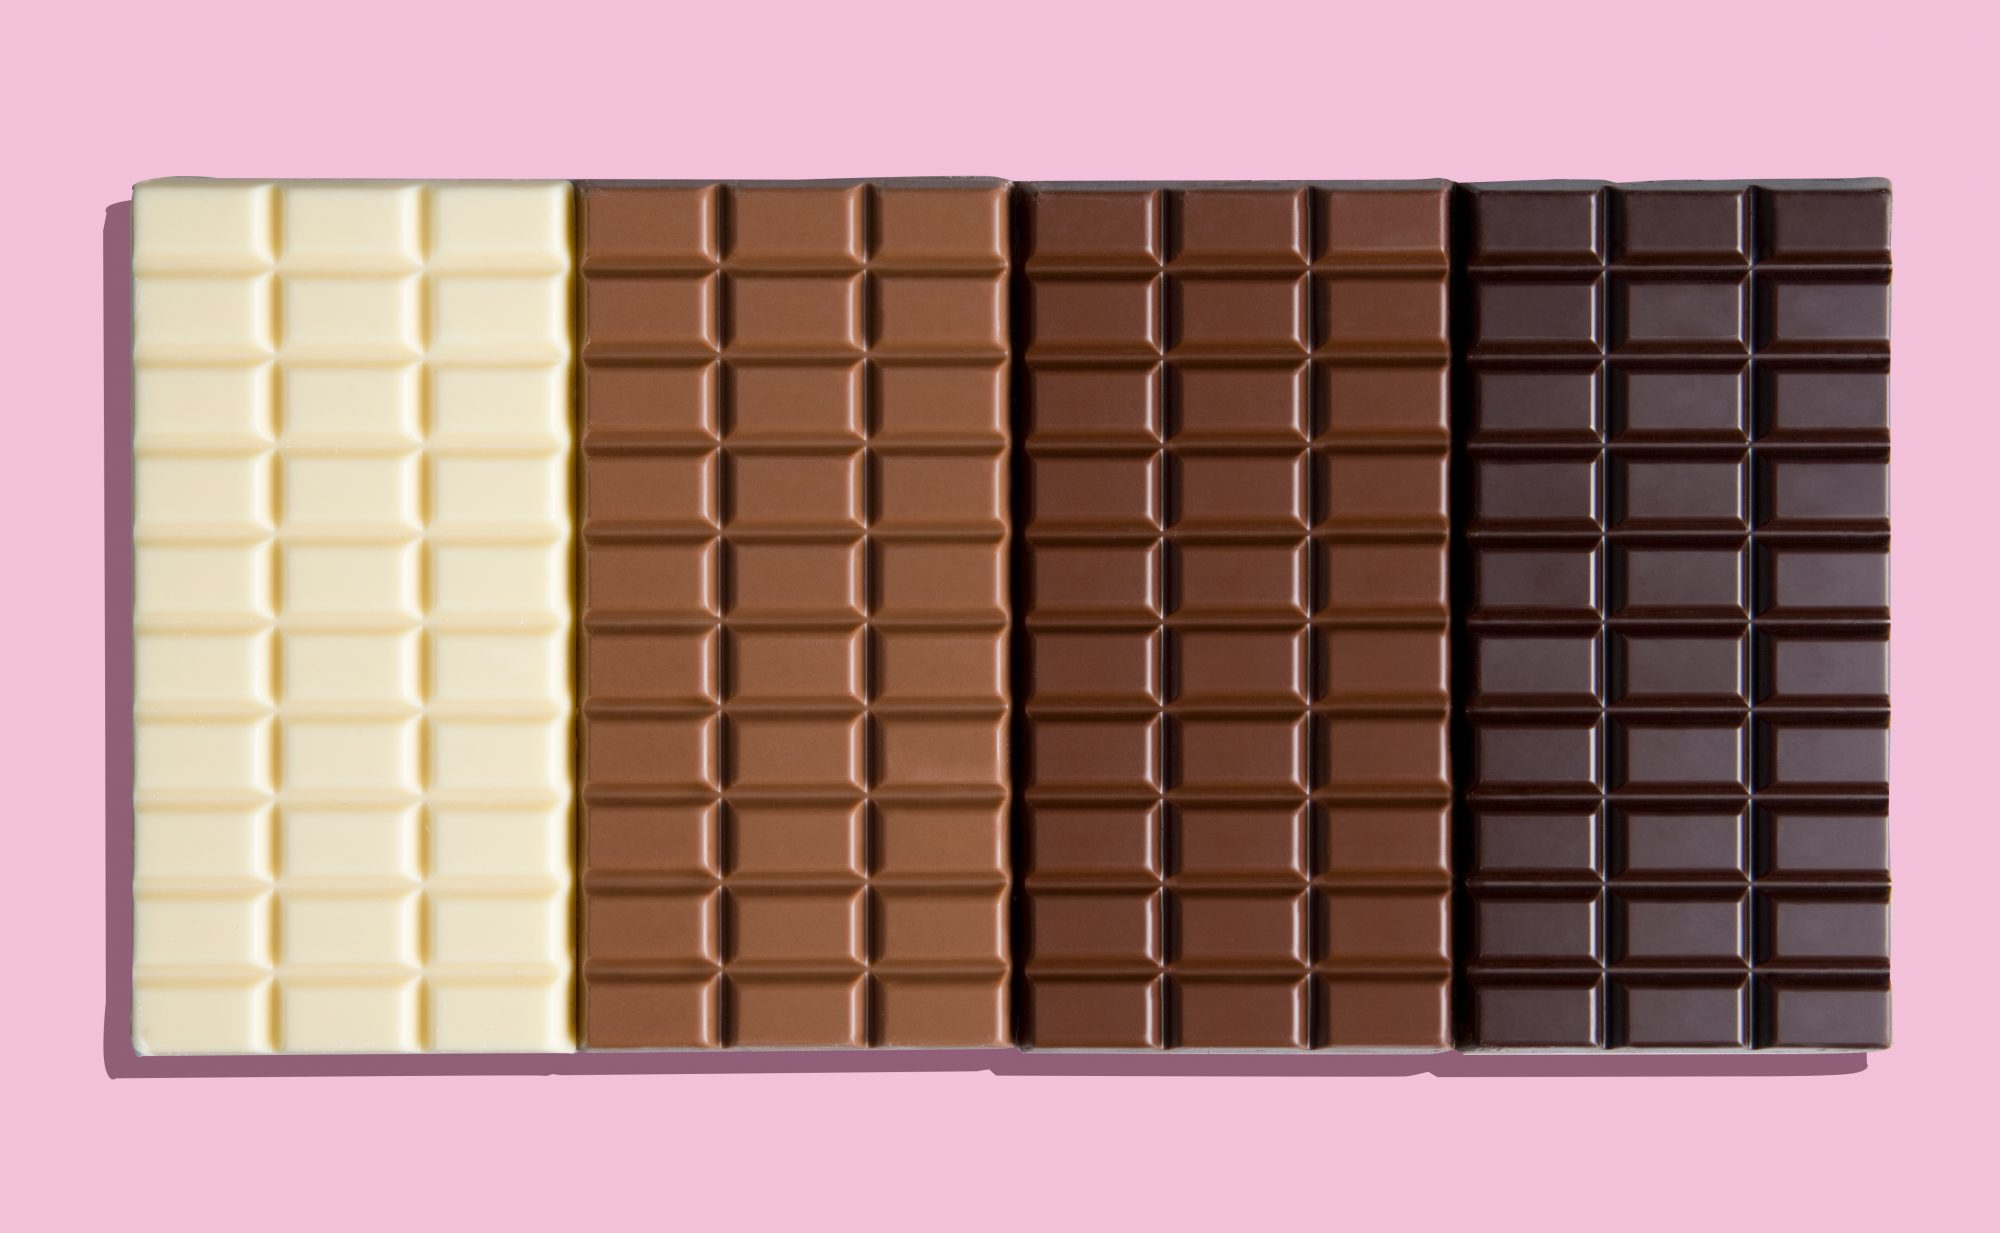 Is Dark Chocolate Really Better for You Than Milk Chocolate? We Asked